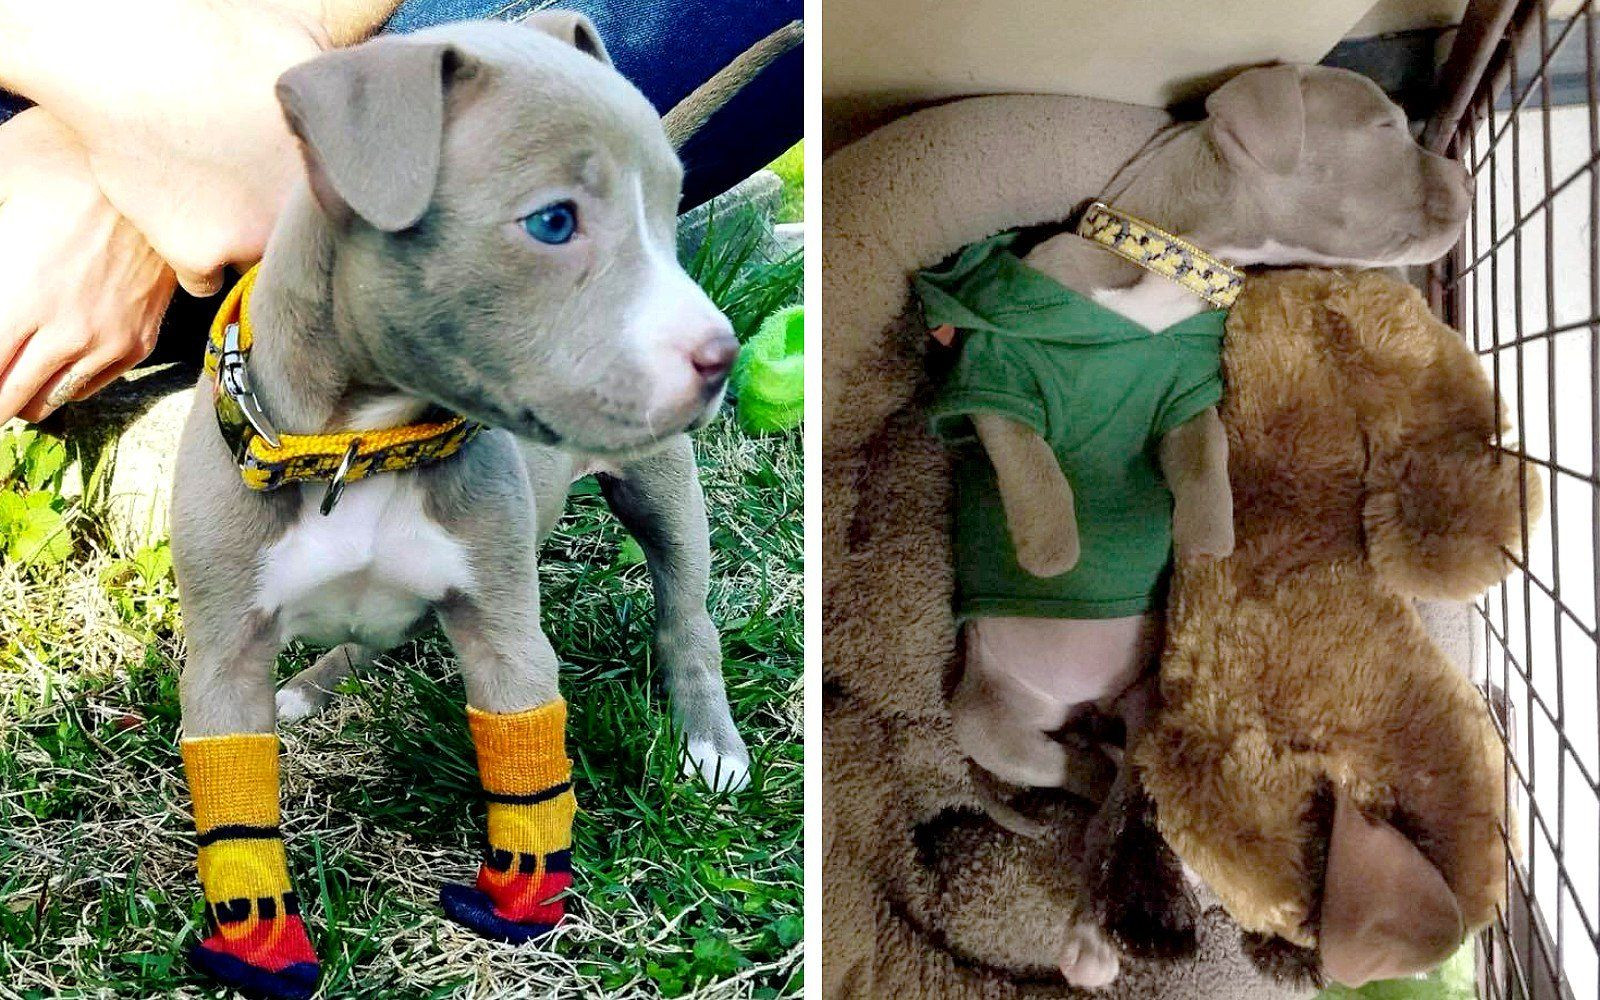 Abused Puppy Who Doesn T Have Front Paws Now Has A Warm Bed And Tiny Socks To Protect Her Toes Photos Puppies Animal Rescue Stories Warm Bed